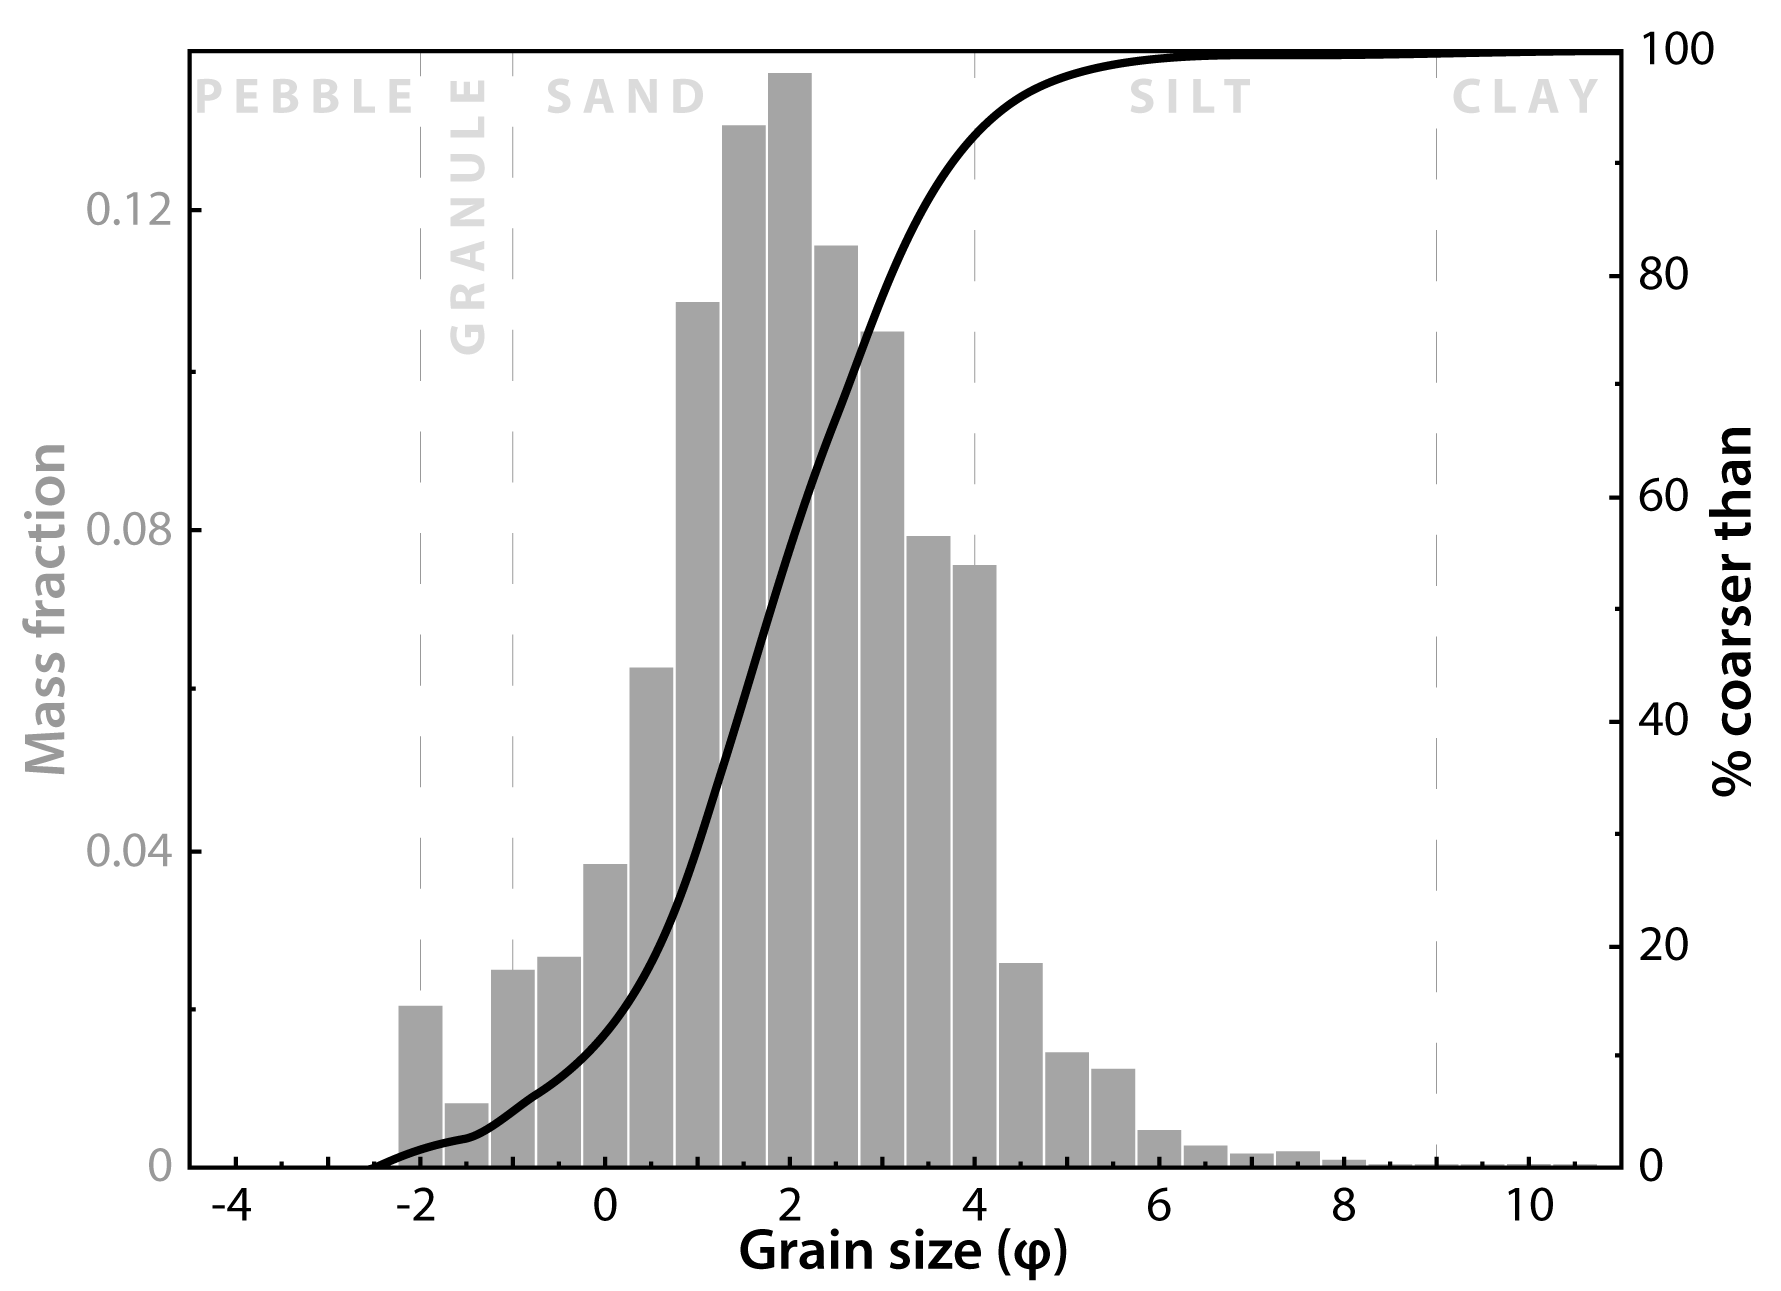 After modification - constant x-axis spacing, gridlines removed, y-axis labels color coded to data, cumulative data presented as a curve, additional information provided in plot background. Plot is in high resolution vector format.